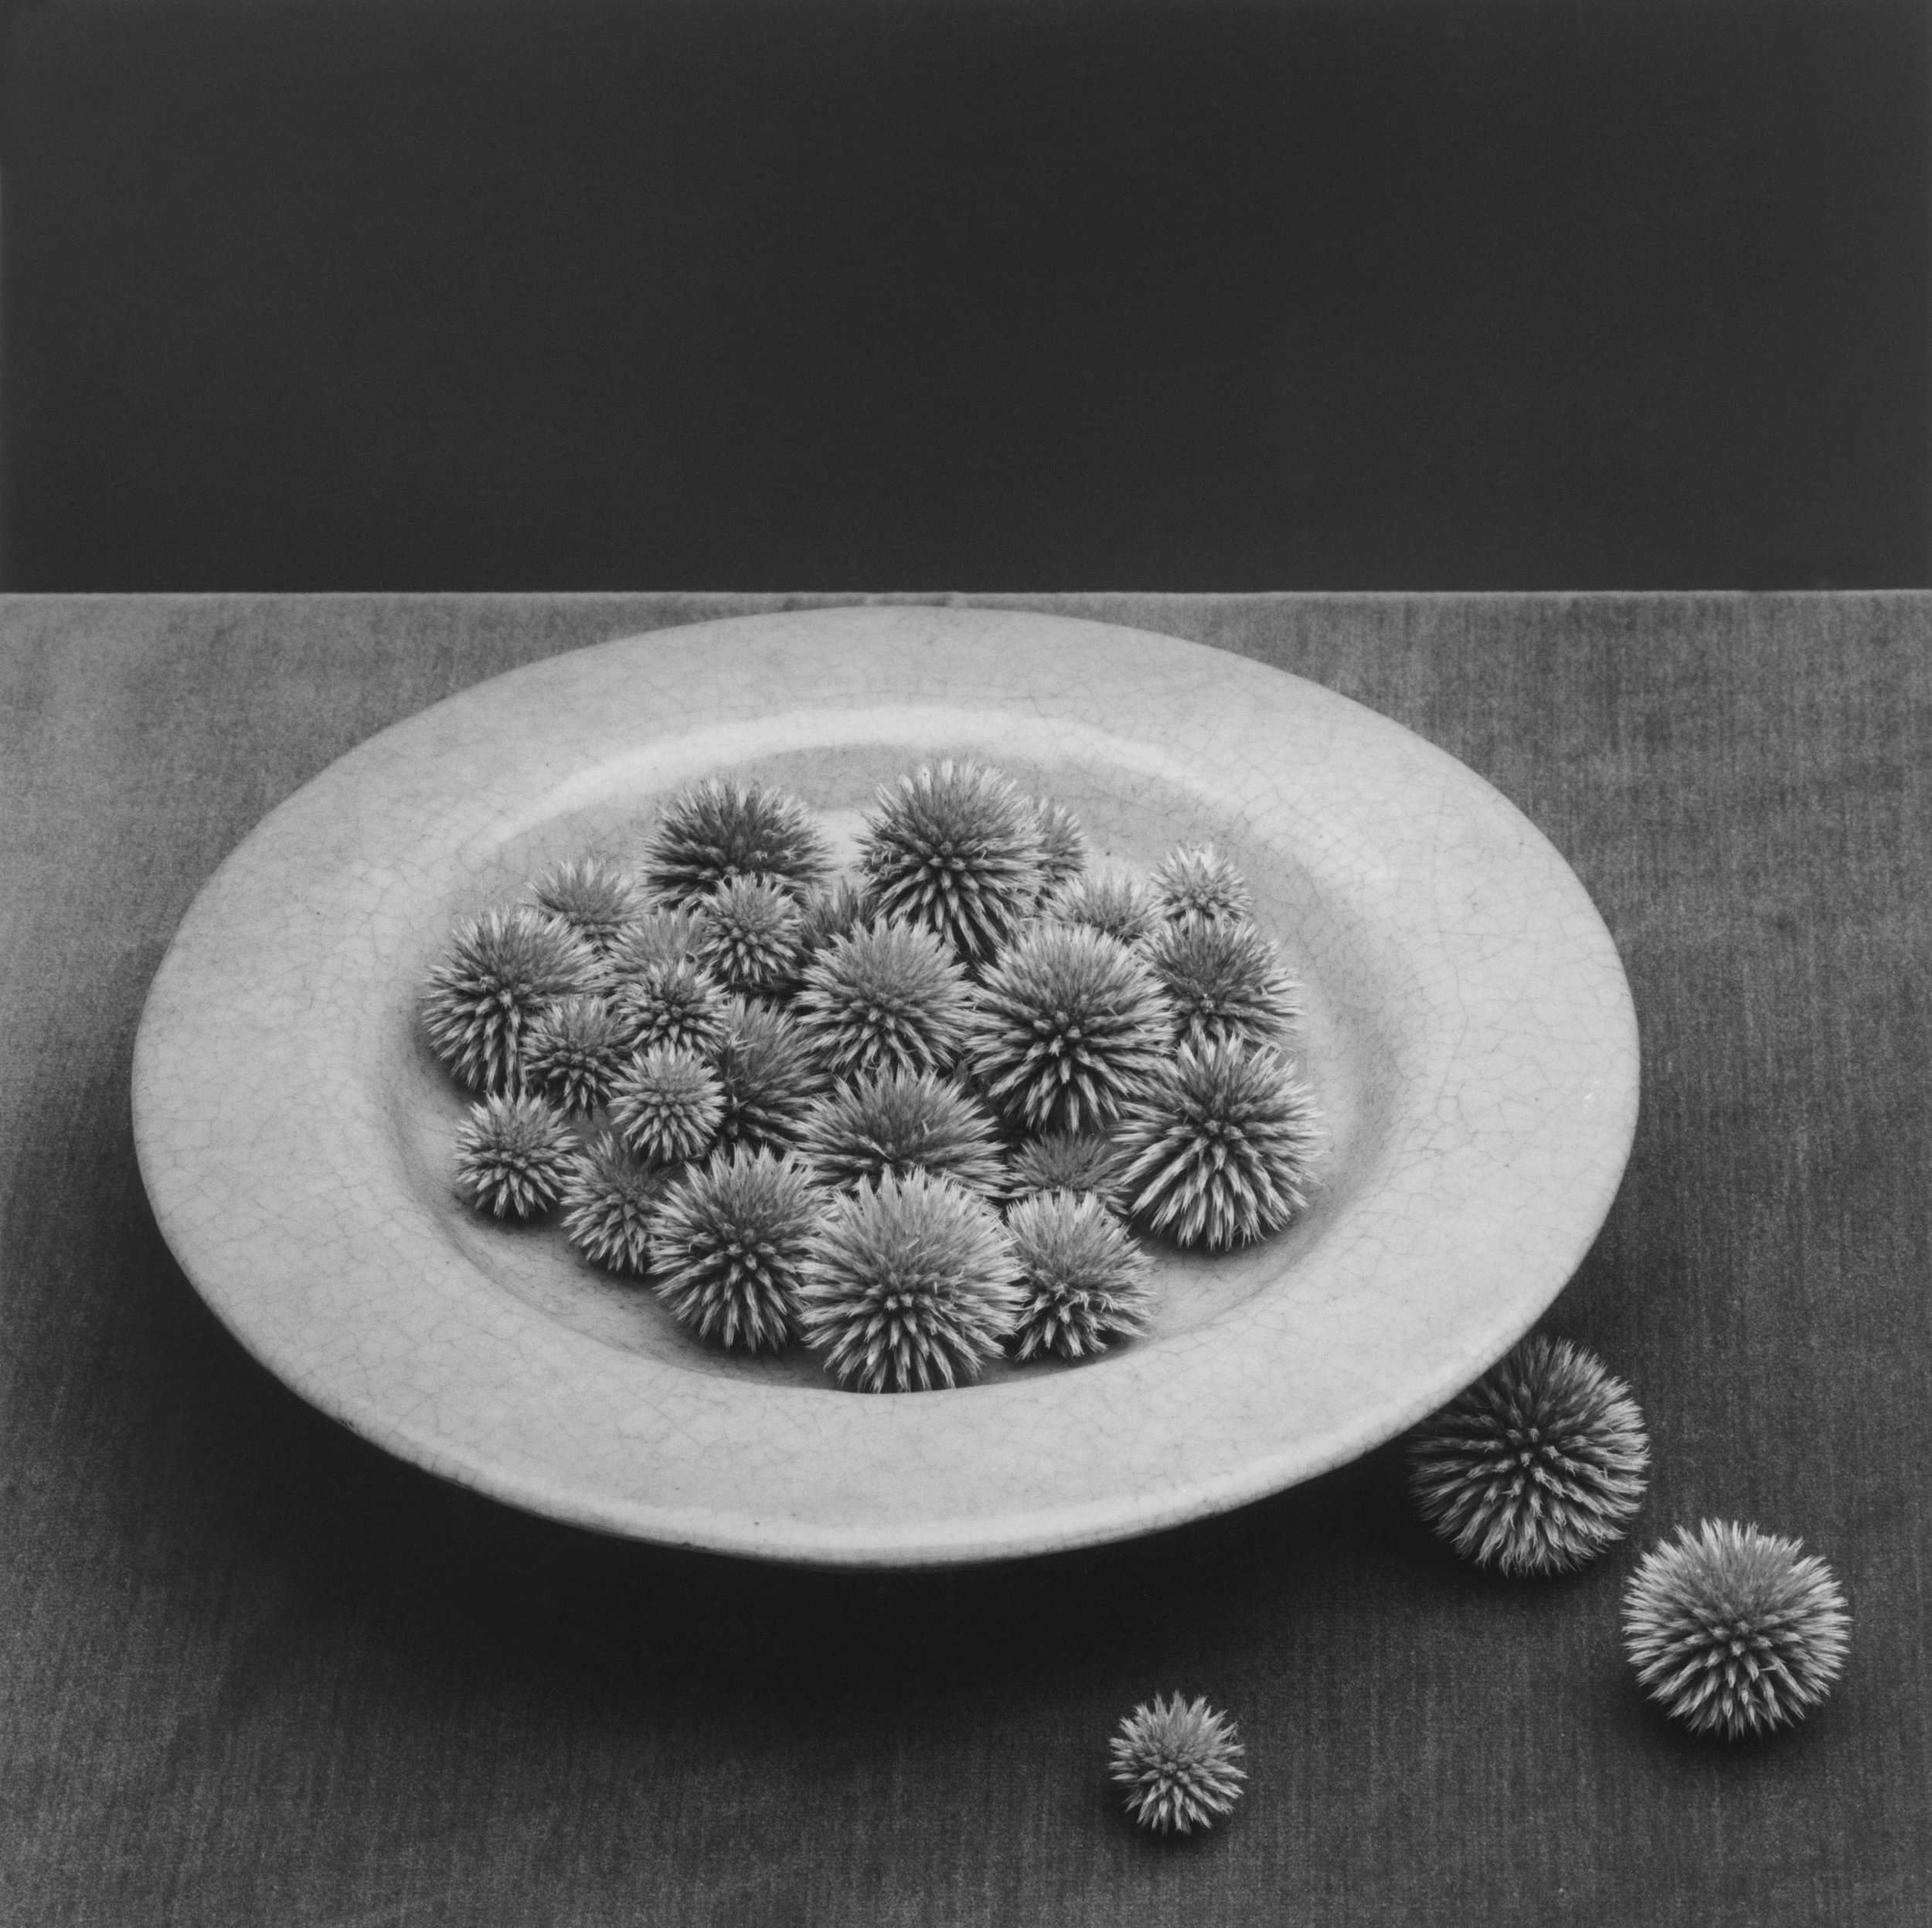 Pods  1985 © Robert Mapplethorpe Foundation. Used by permission Courtesy Alison Jacques Gallery